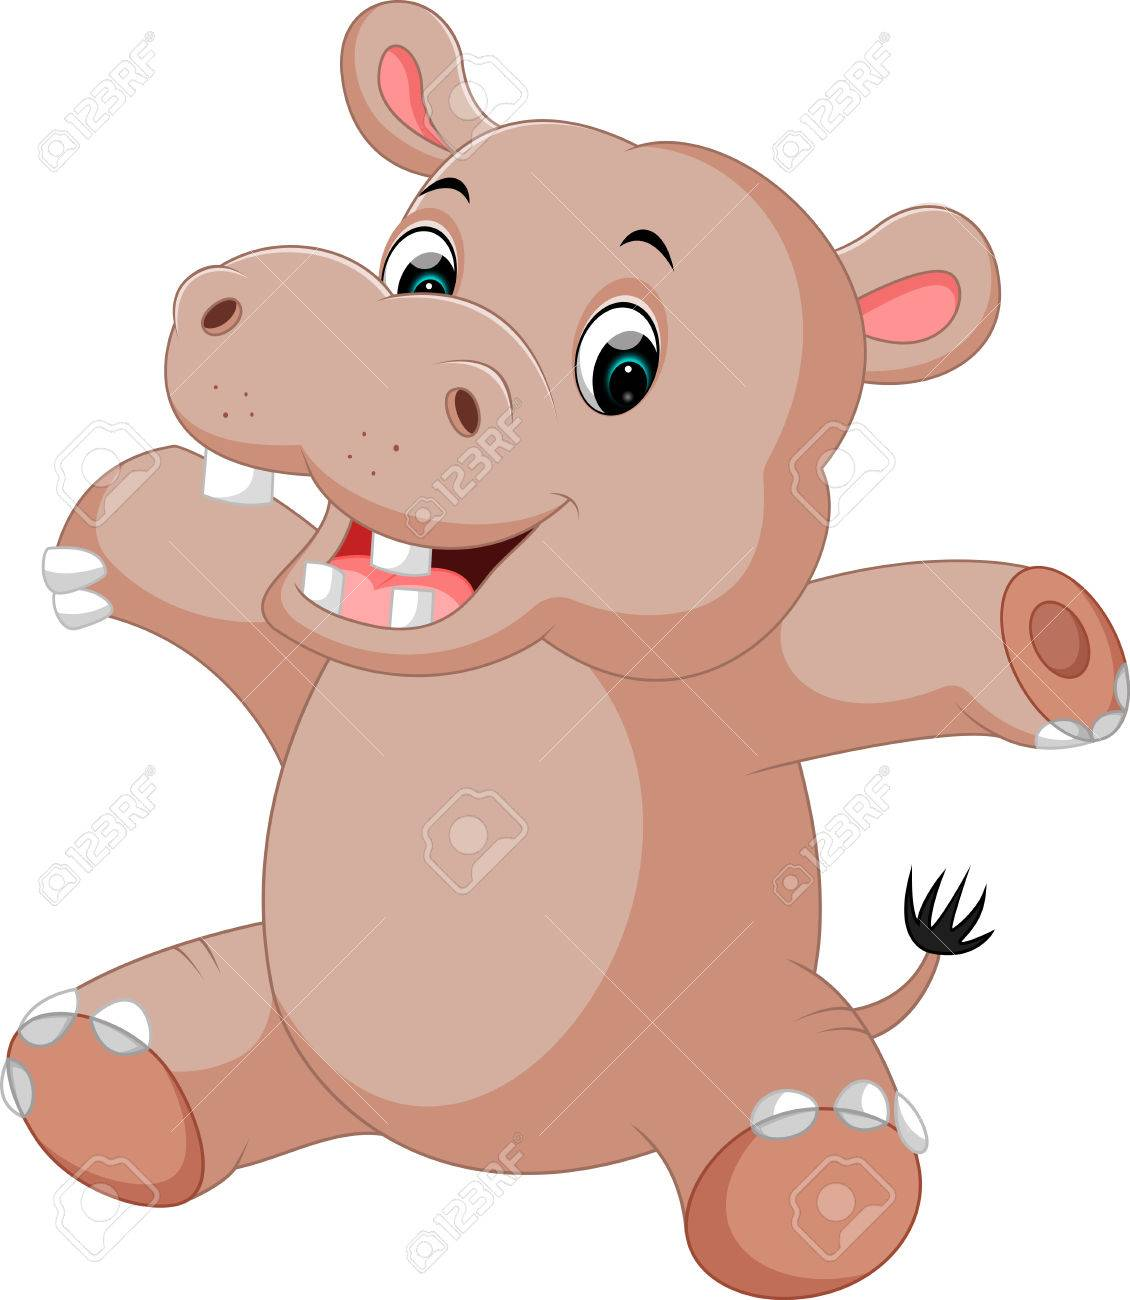 Cute Baby Hippo Cartoon Stock Photo Picture And Royalty Free Image Image 74550132